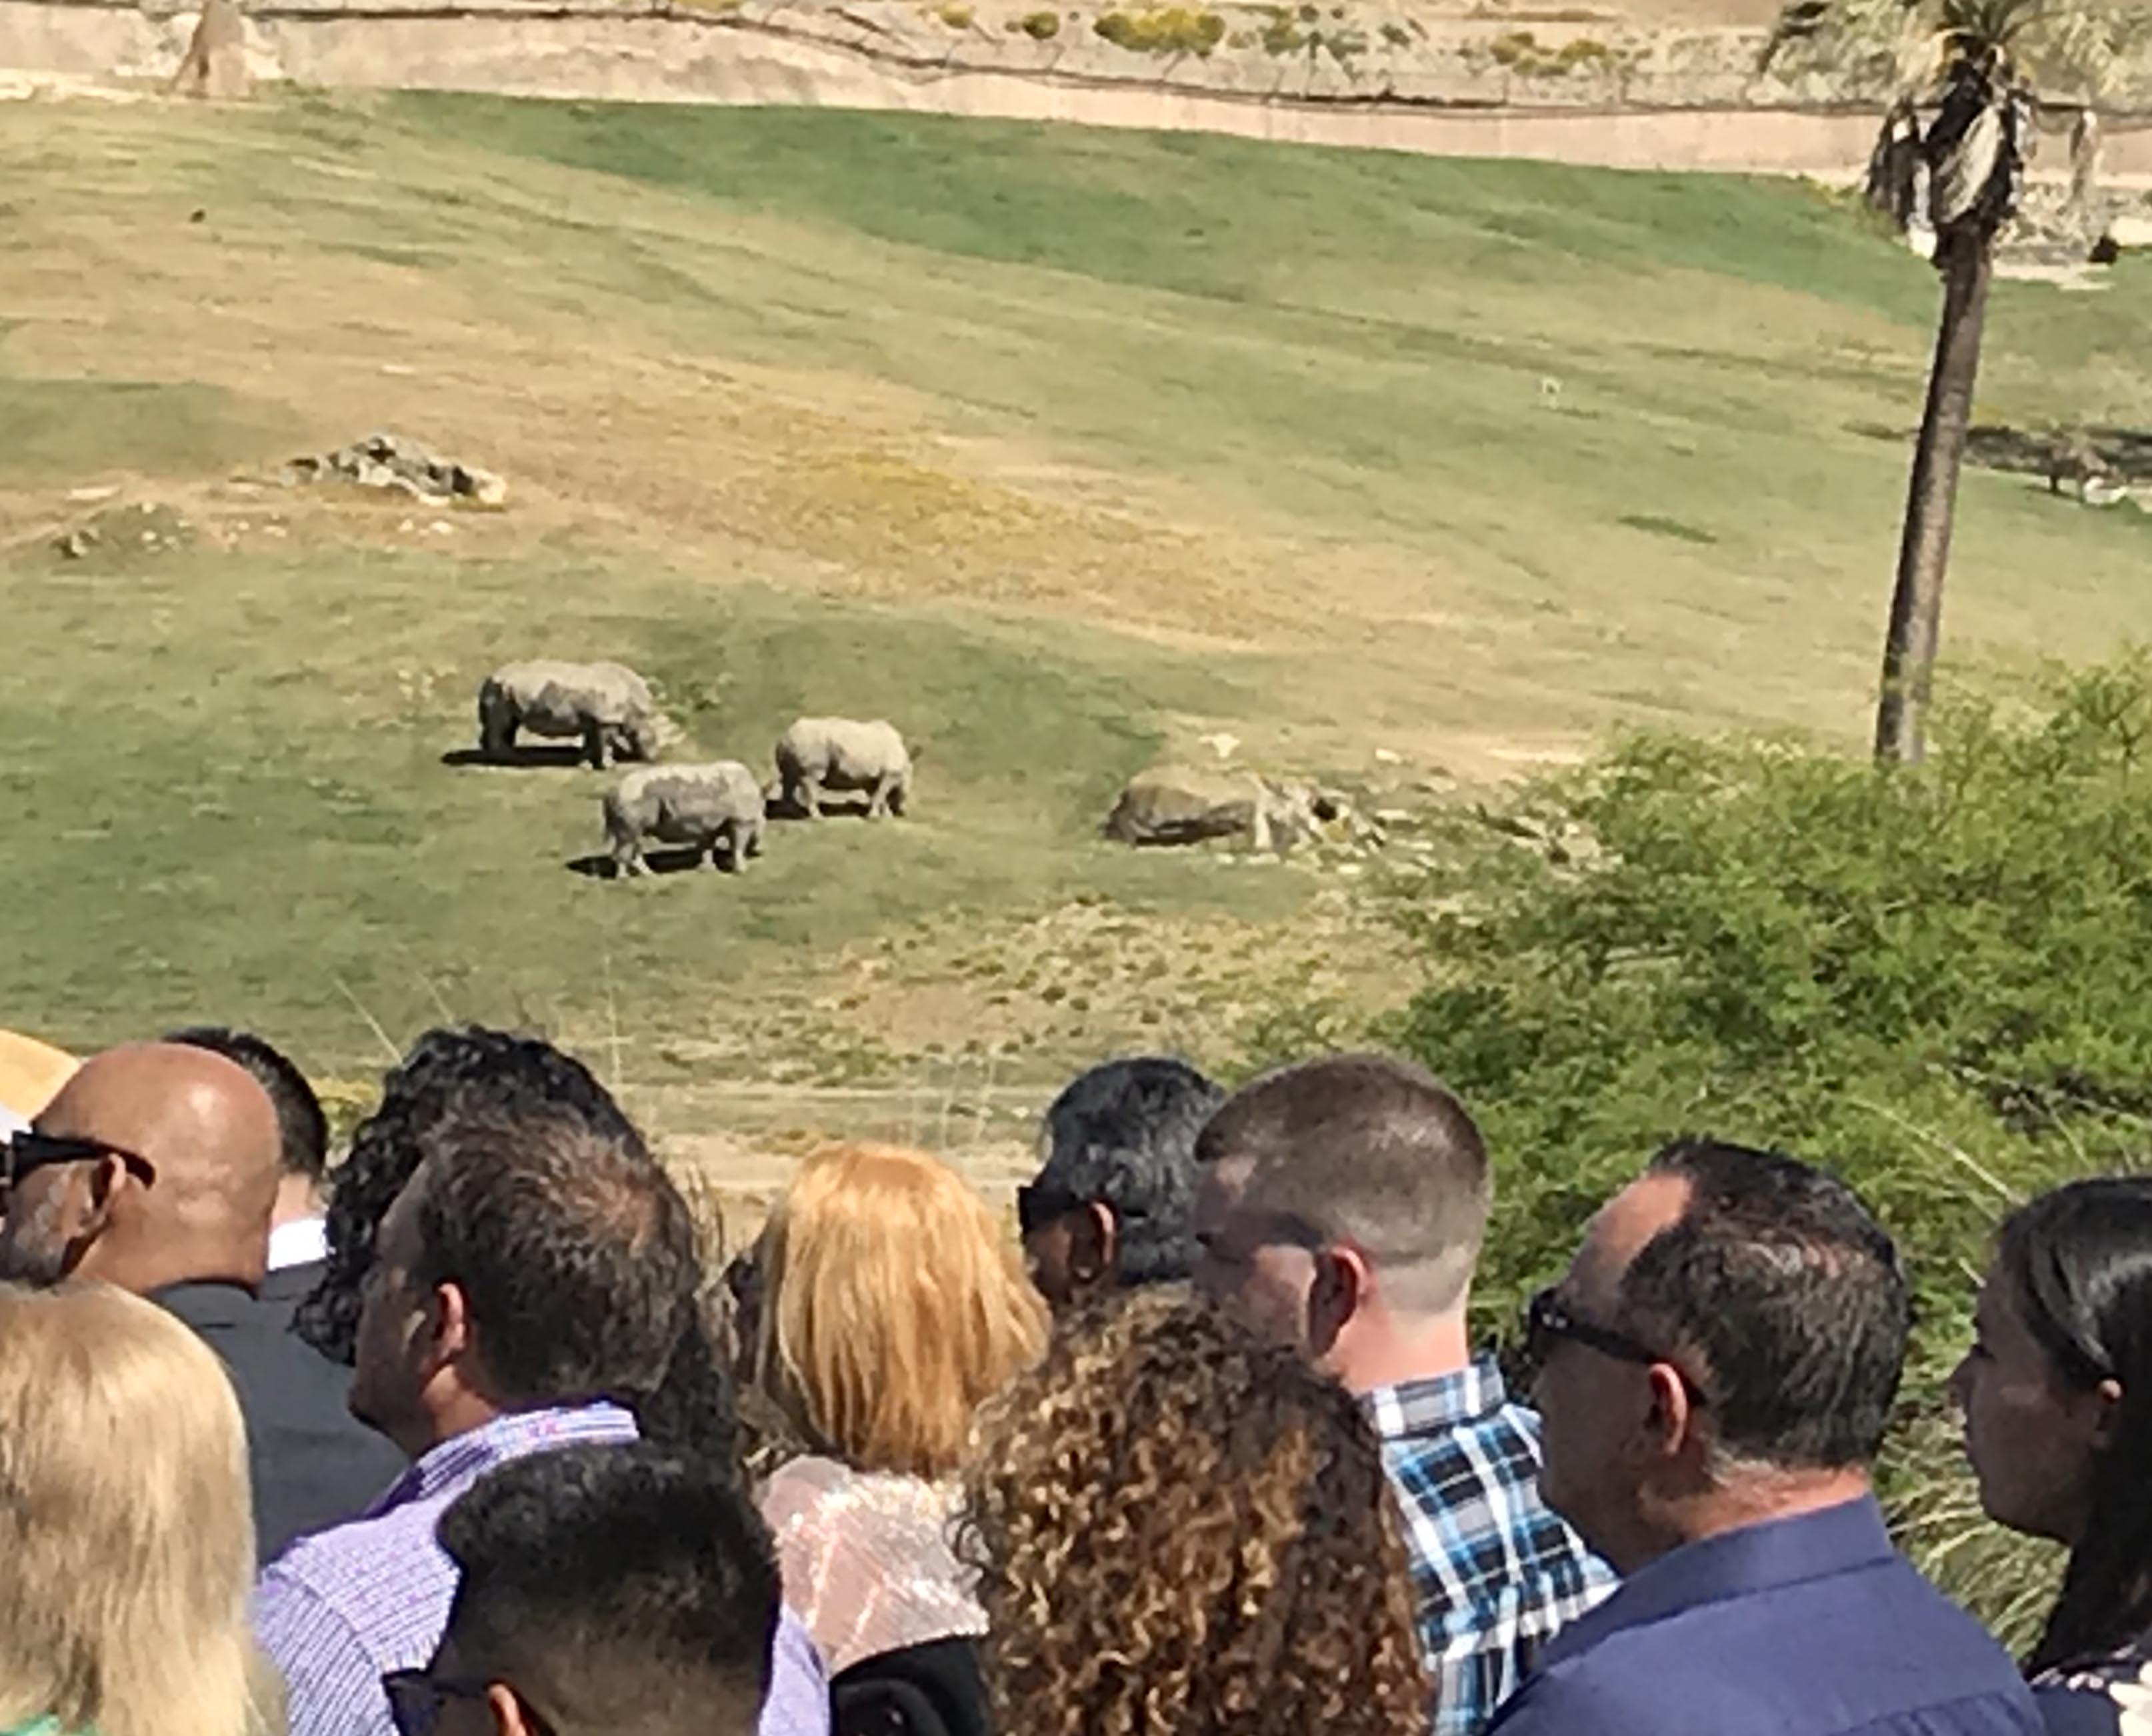 Wild Weddings at the San Diego Zoo-Safari Park